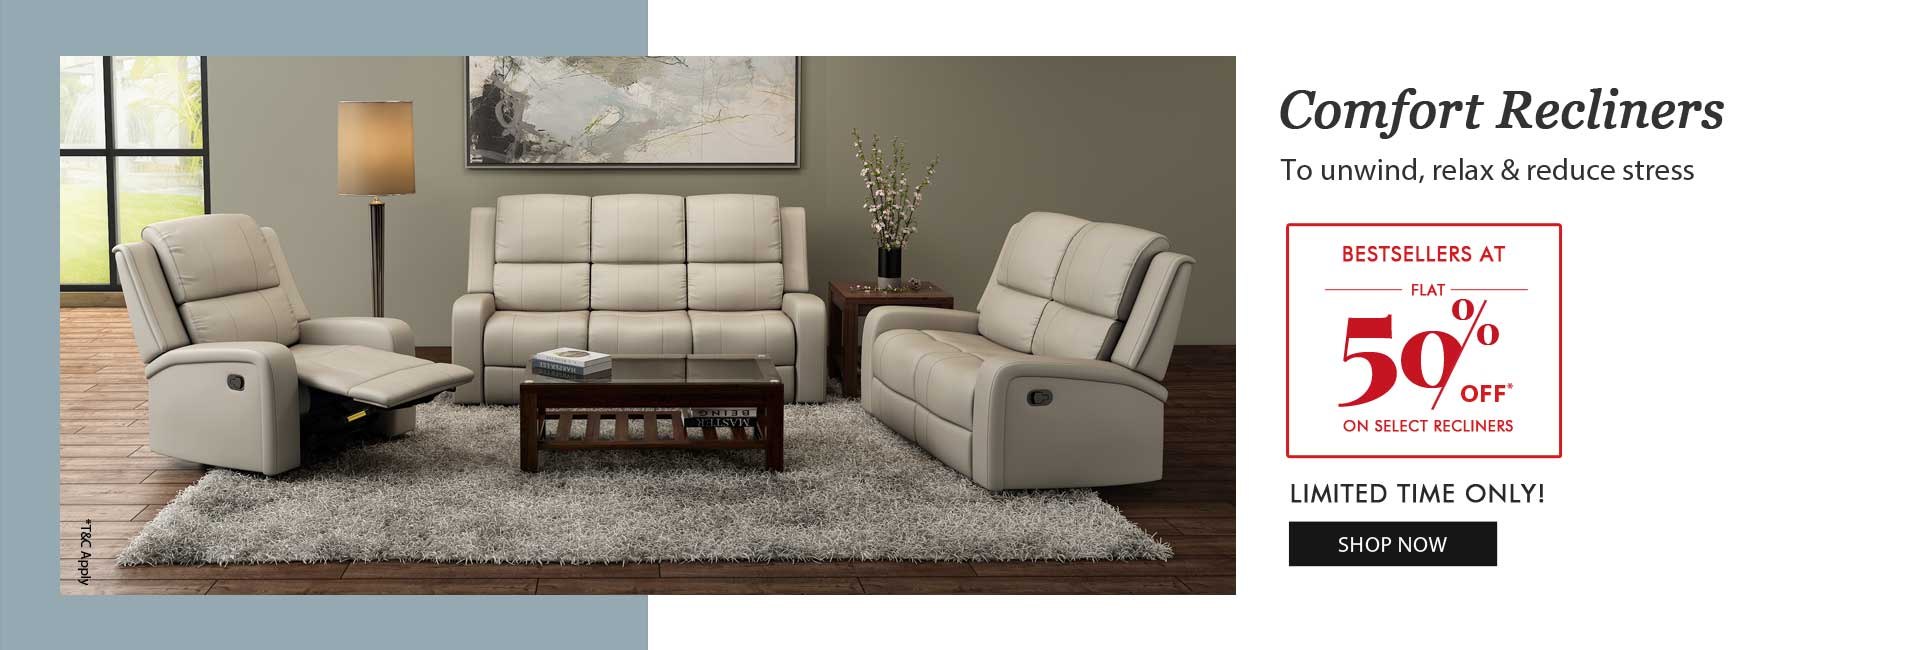 Flat 50% off on select Recliners